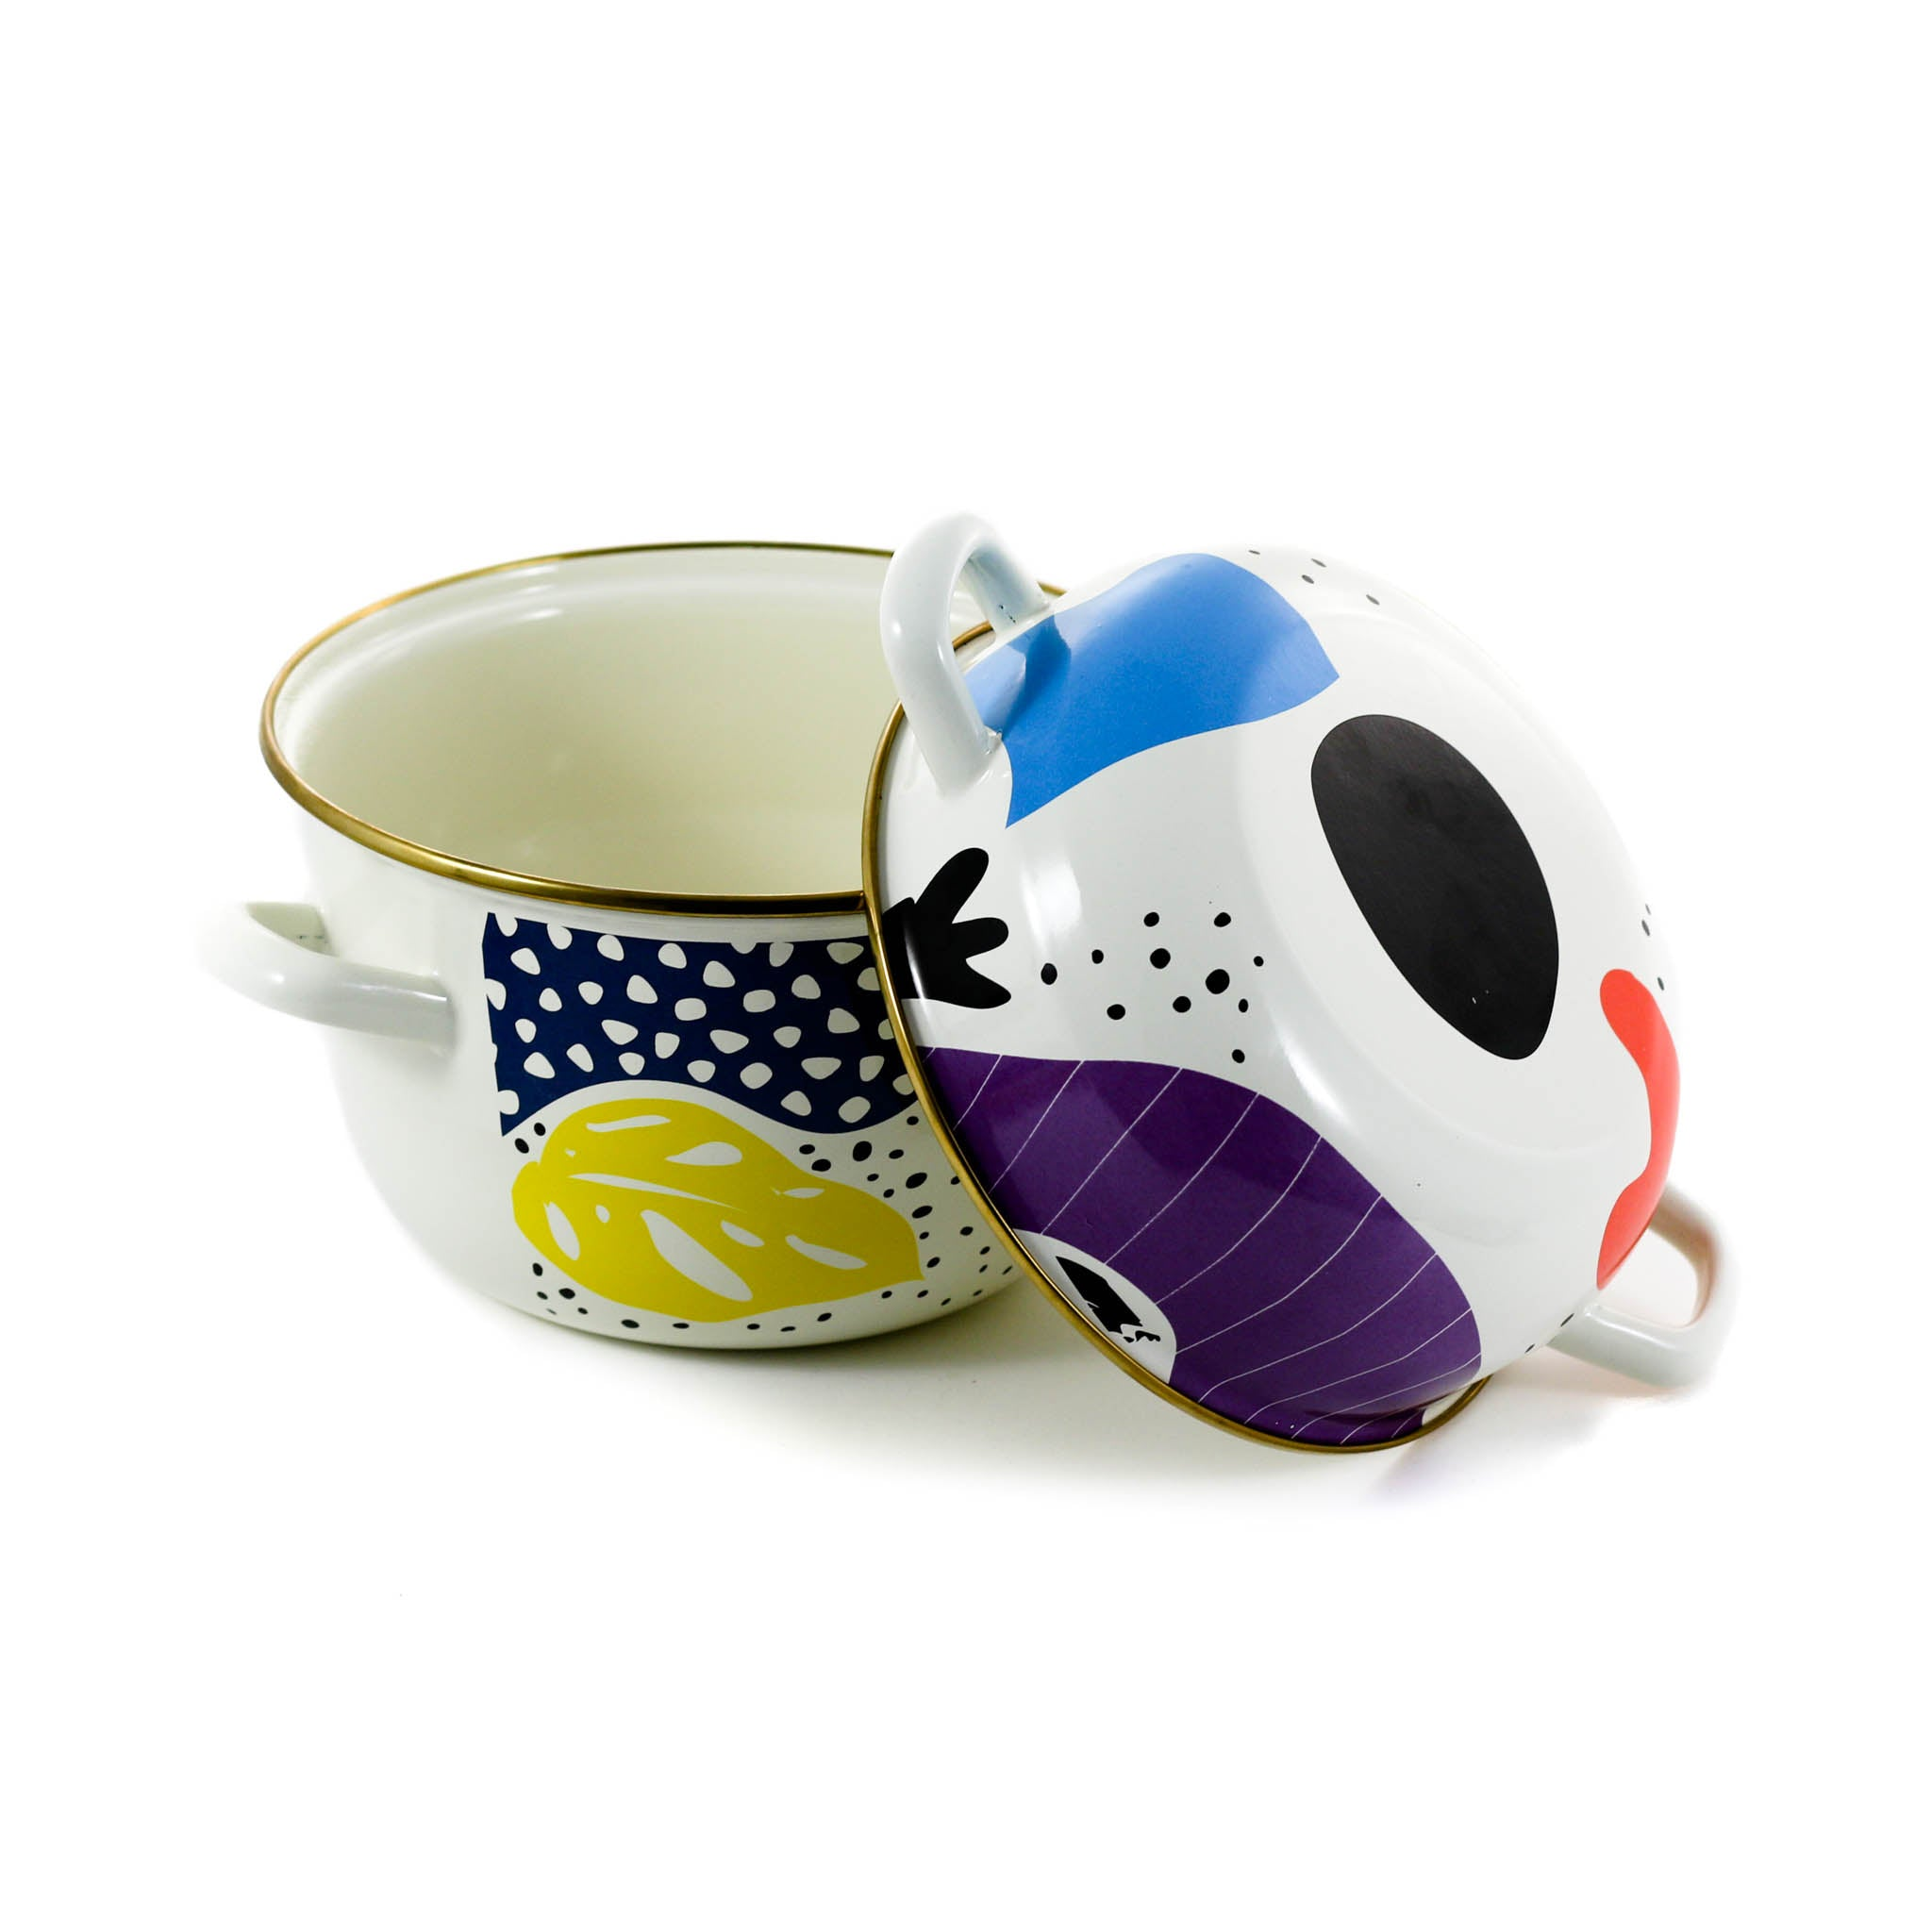 Abstract Enamel Mussel Pot